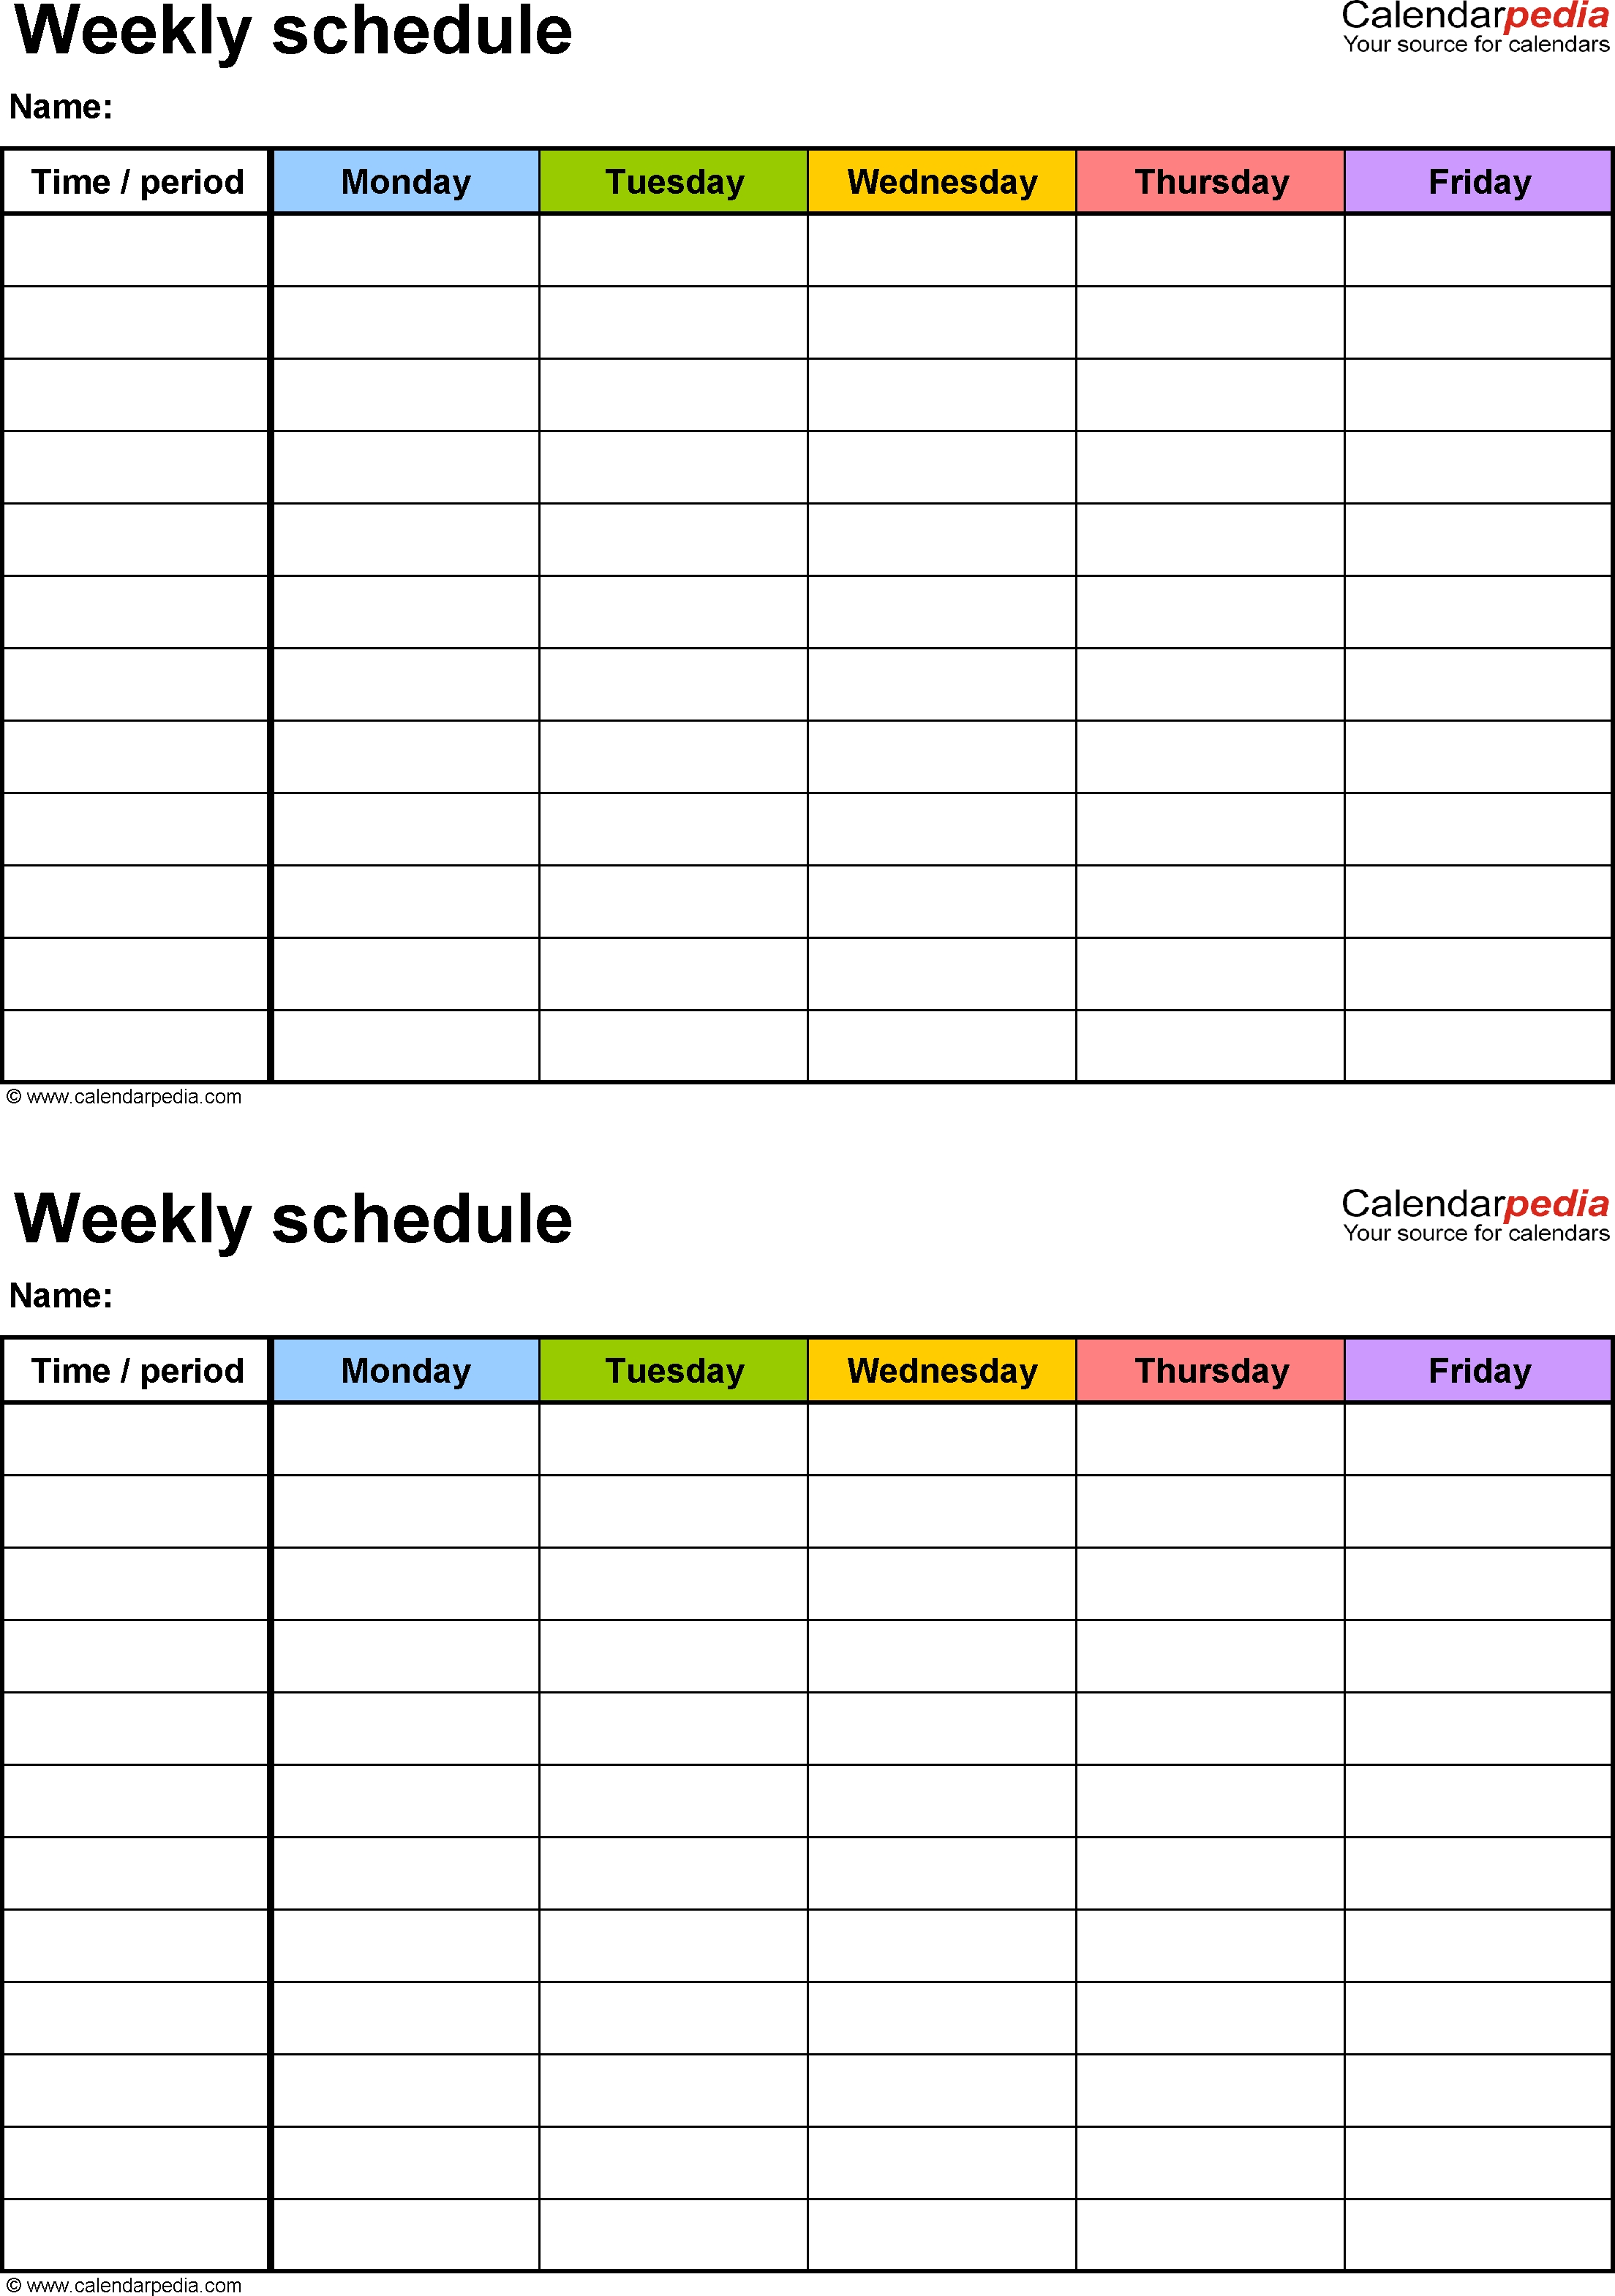 Free Weekly Schedule Templates For Excel - 18 Templates with Printable Schedule 1 Week Editable